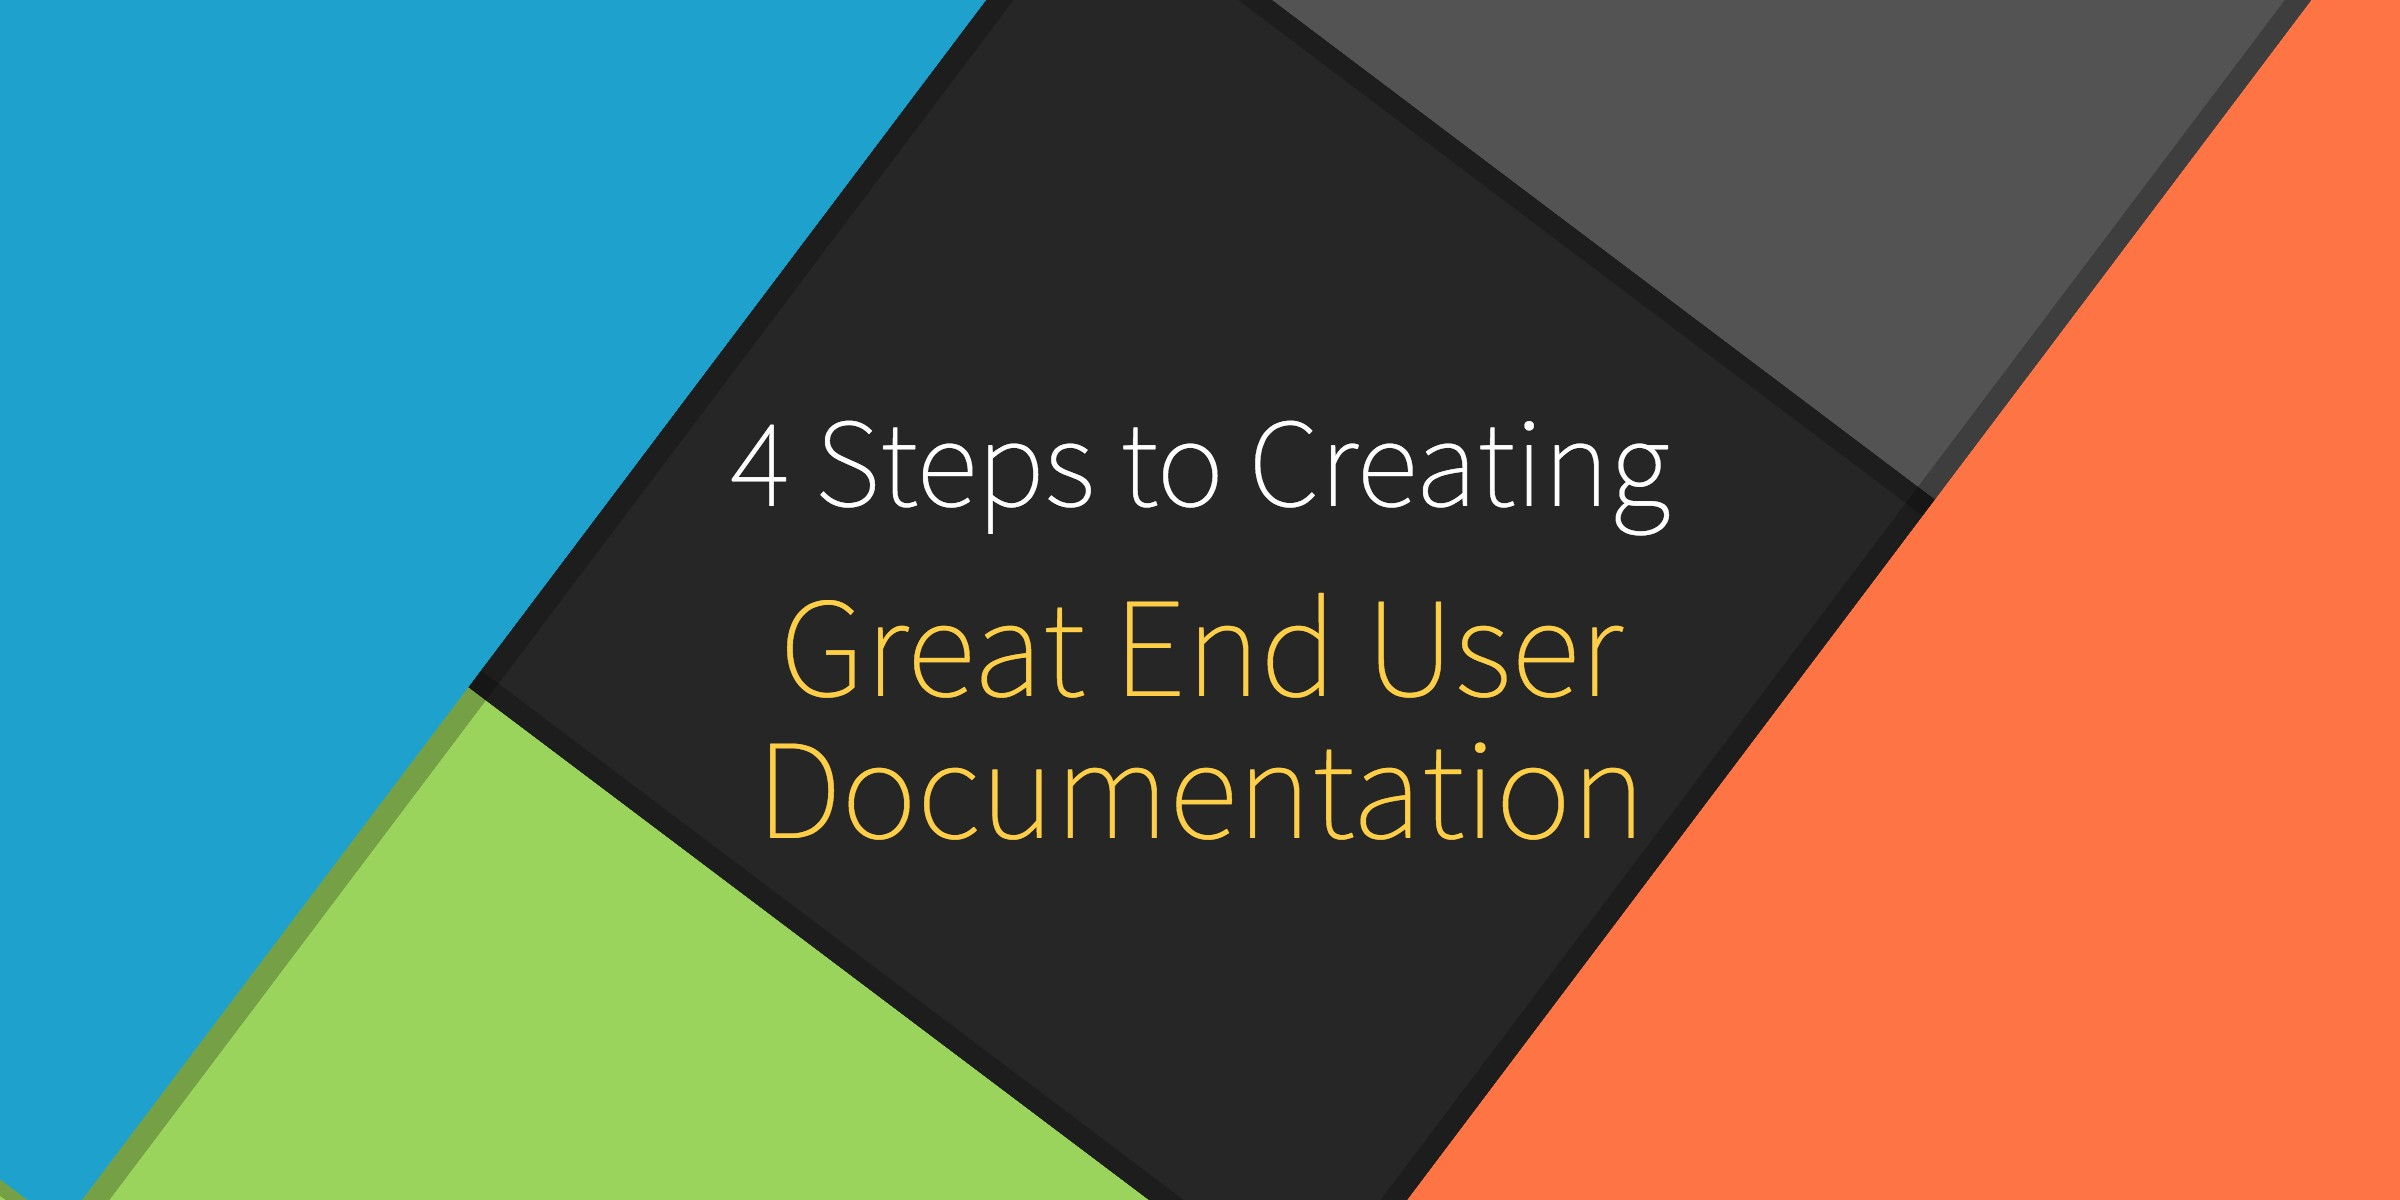 End User Documentation Template Business Profile Format In Word Great End  User Documentation End User Documentation  End User Documentation Template